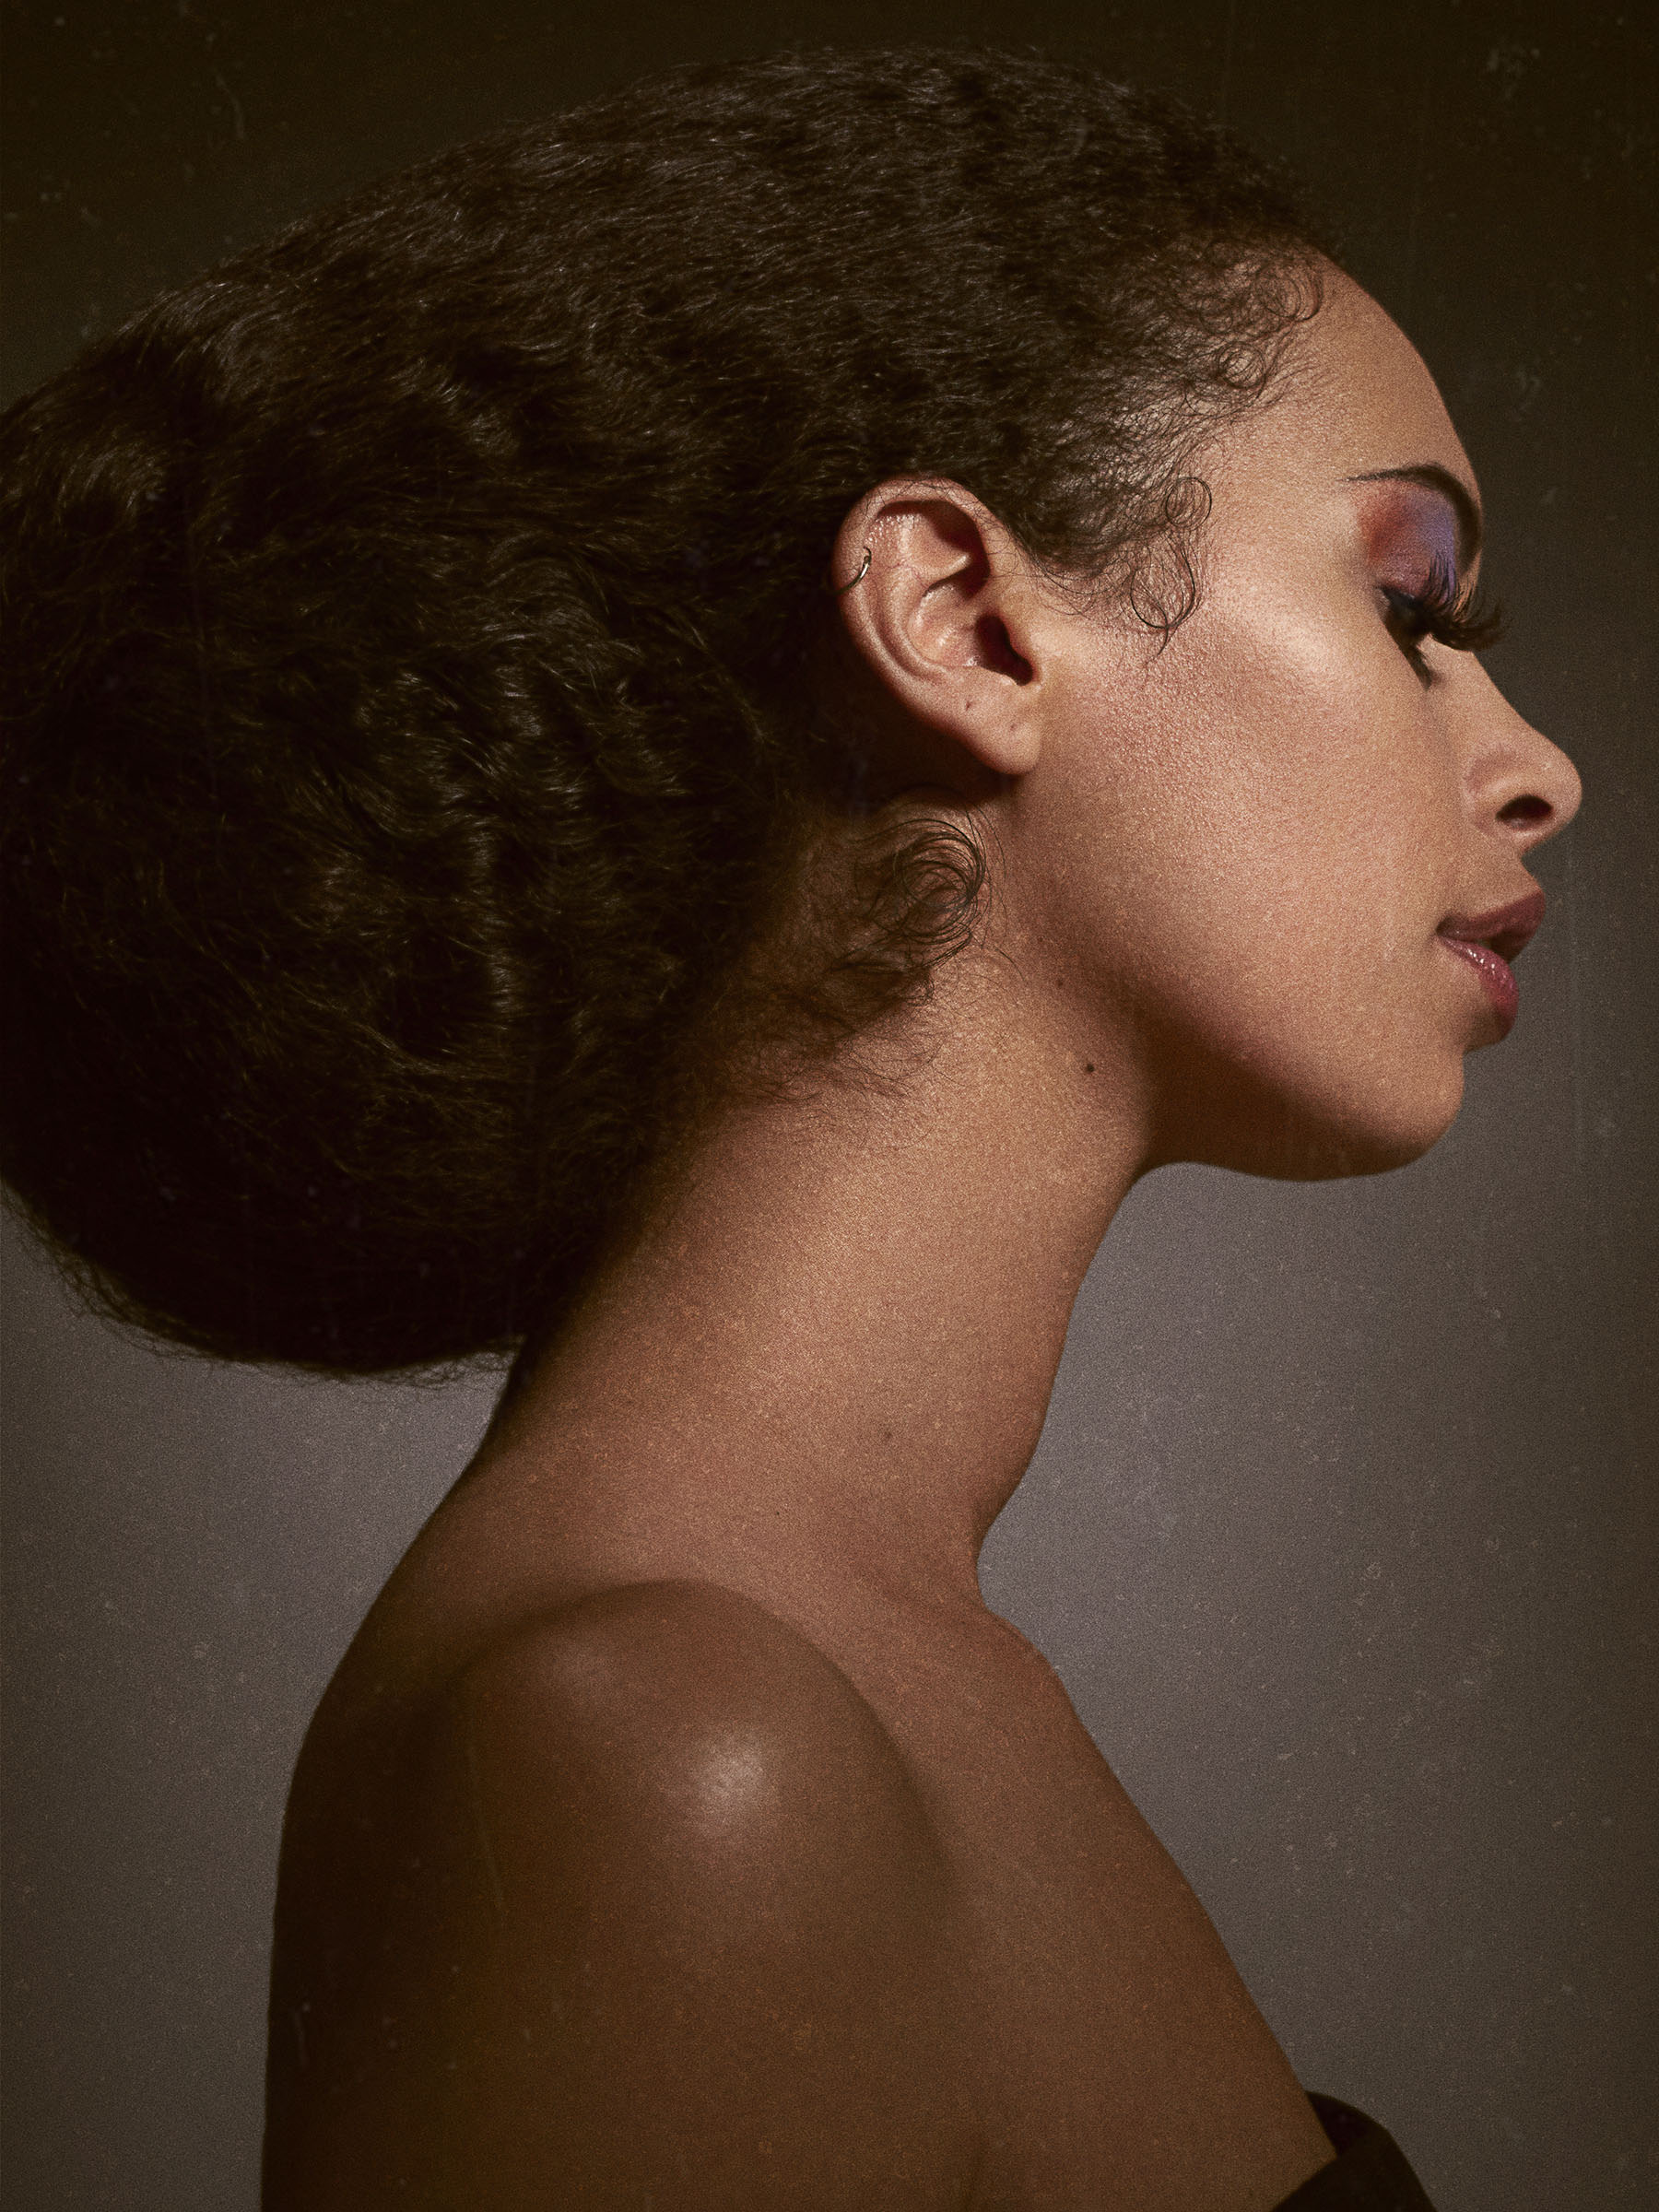 Side profile of a woman with Makeup and long lashes